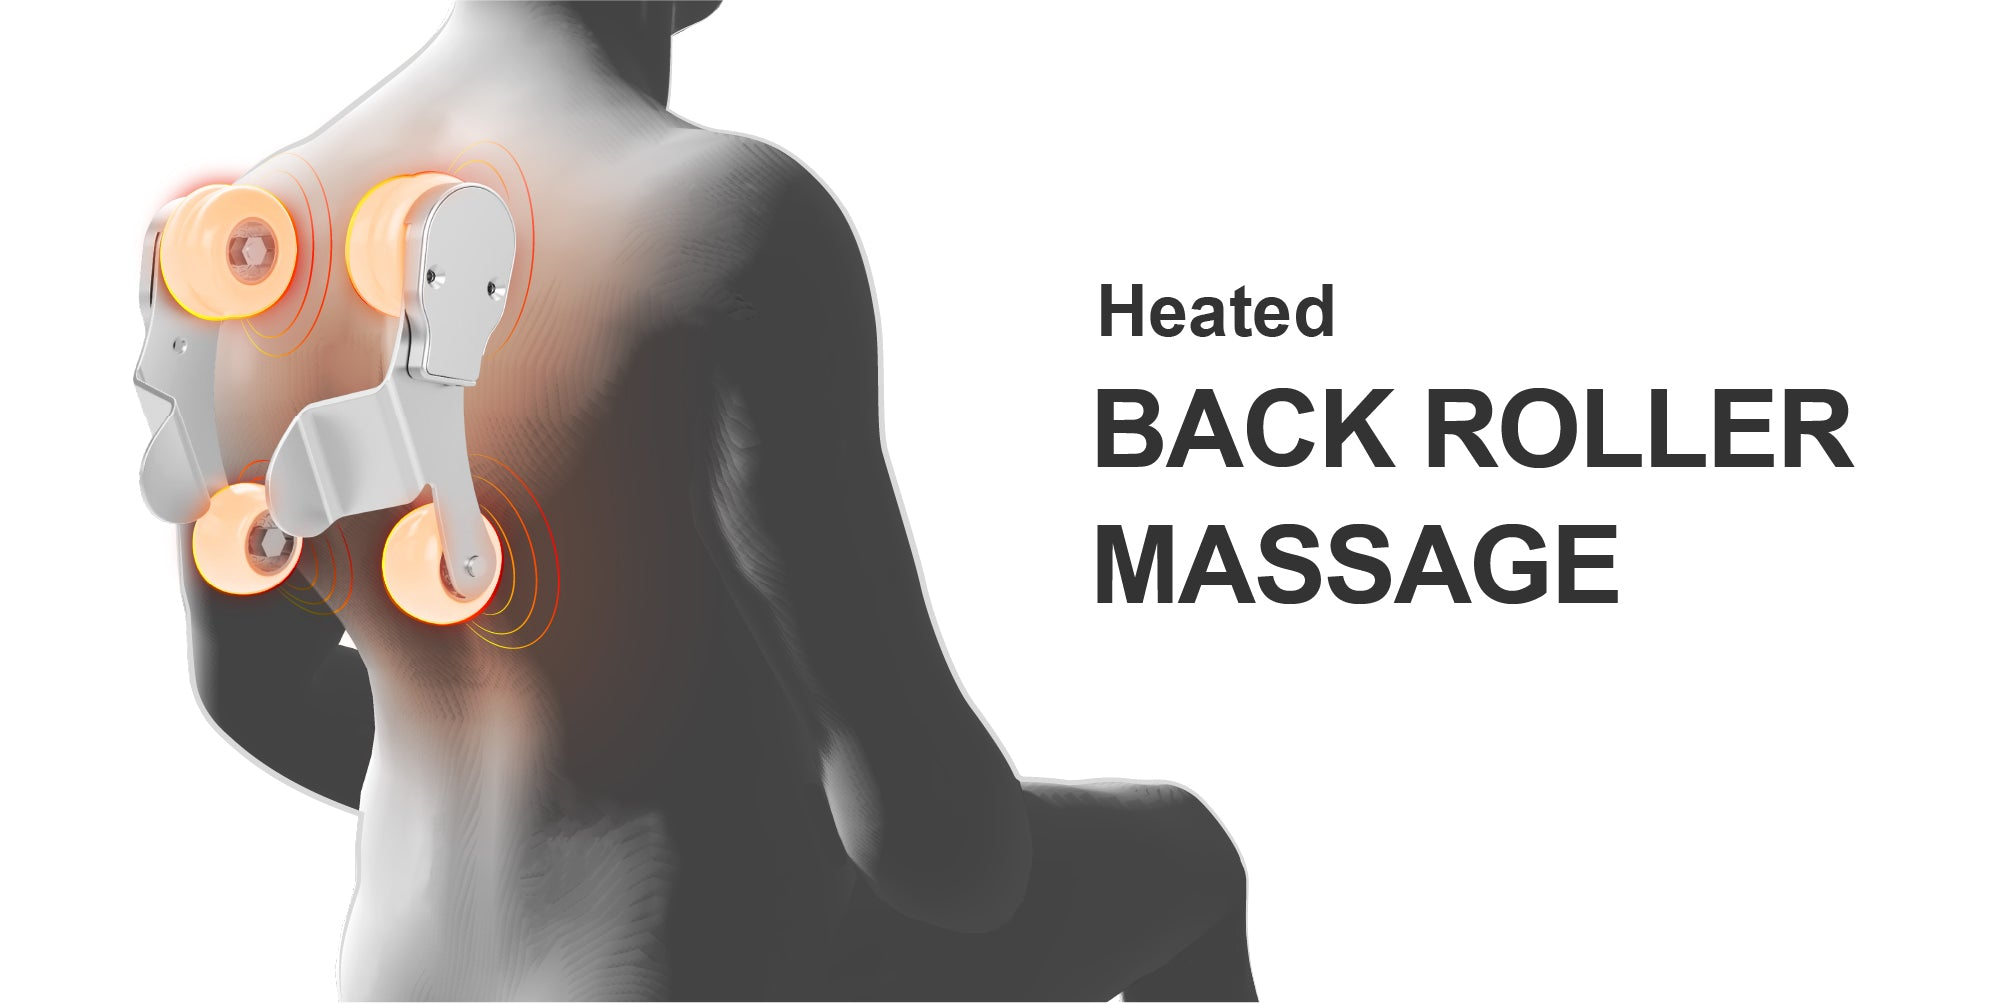 Heated Back Roller Massage